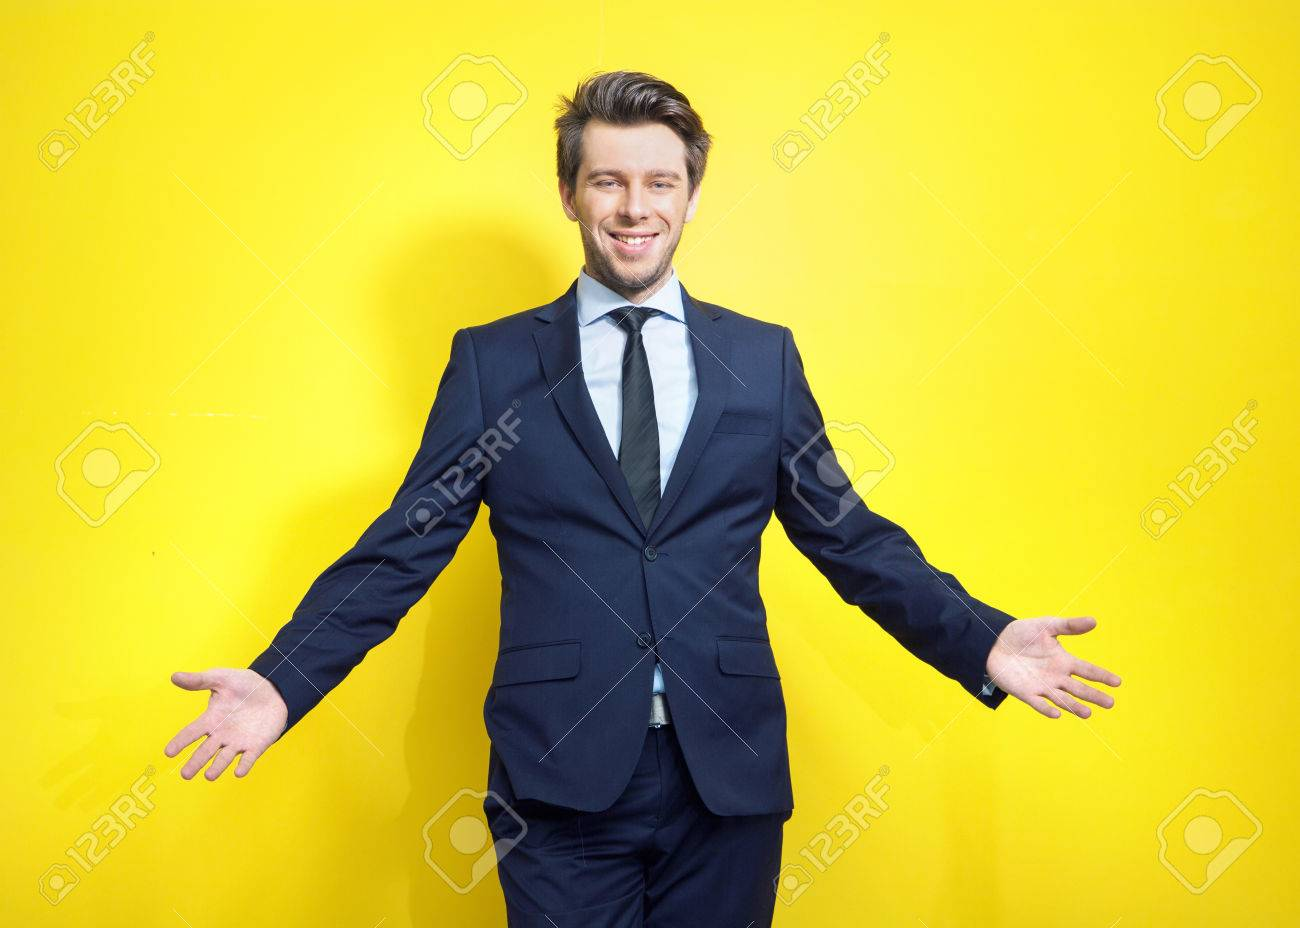 Friendly and handsome young businessman in open pose